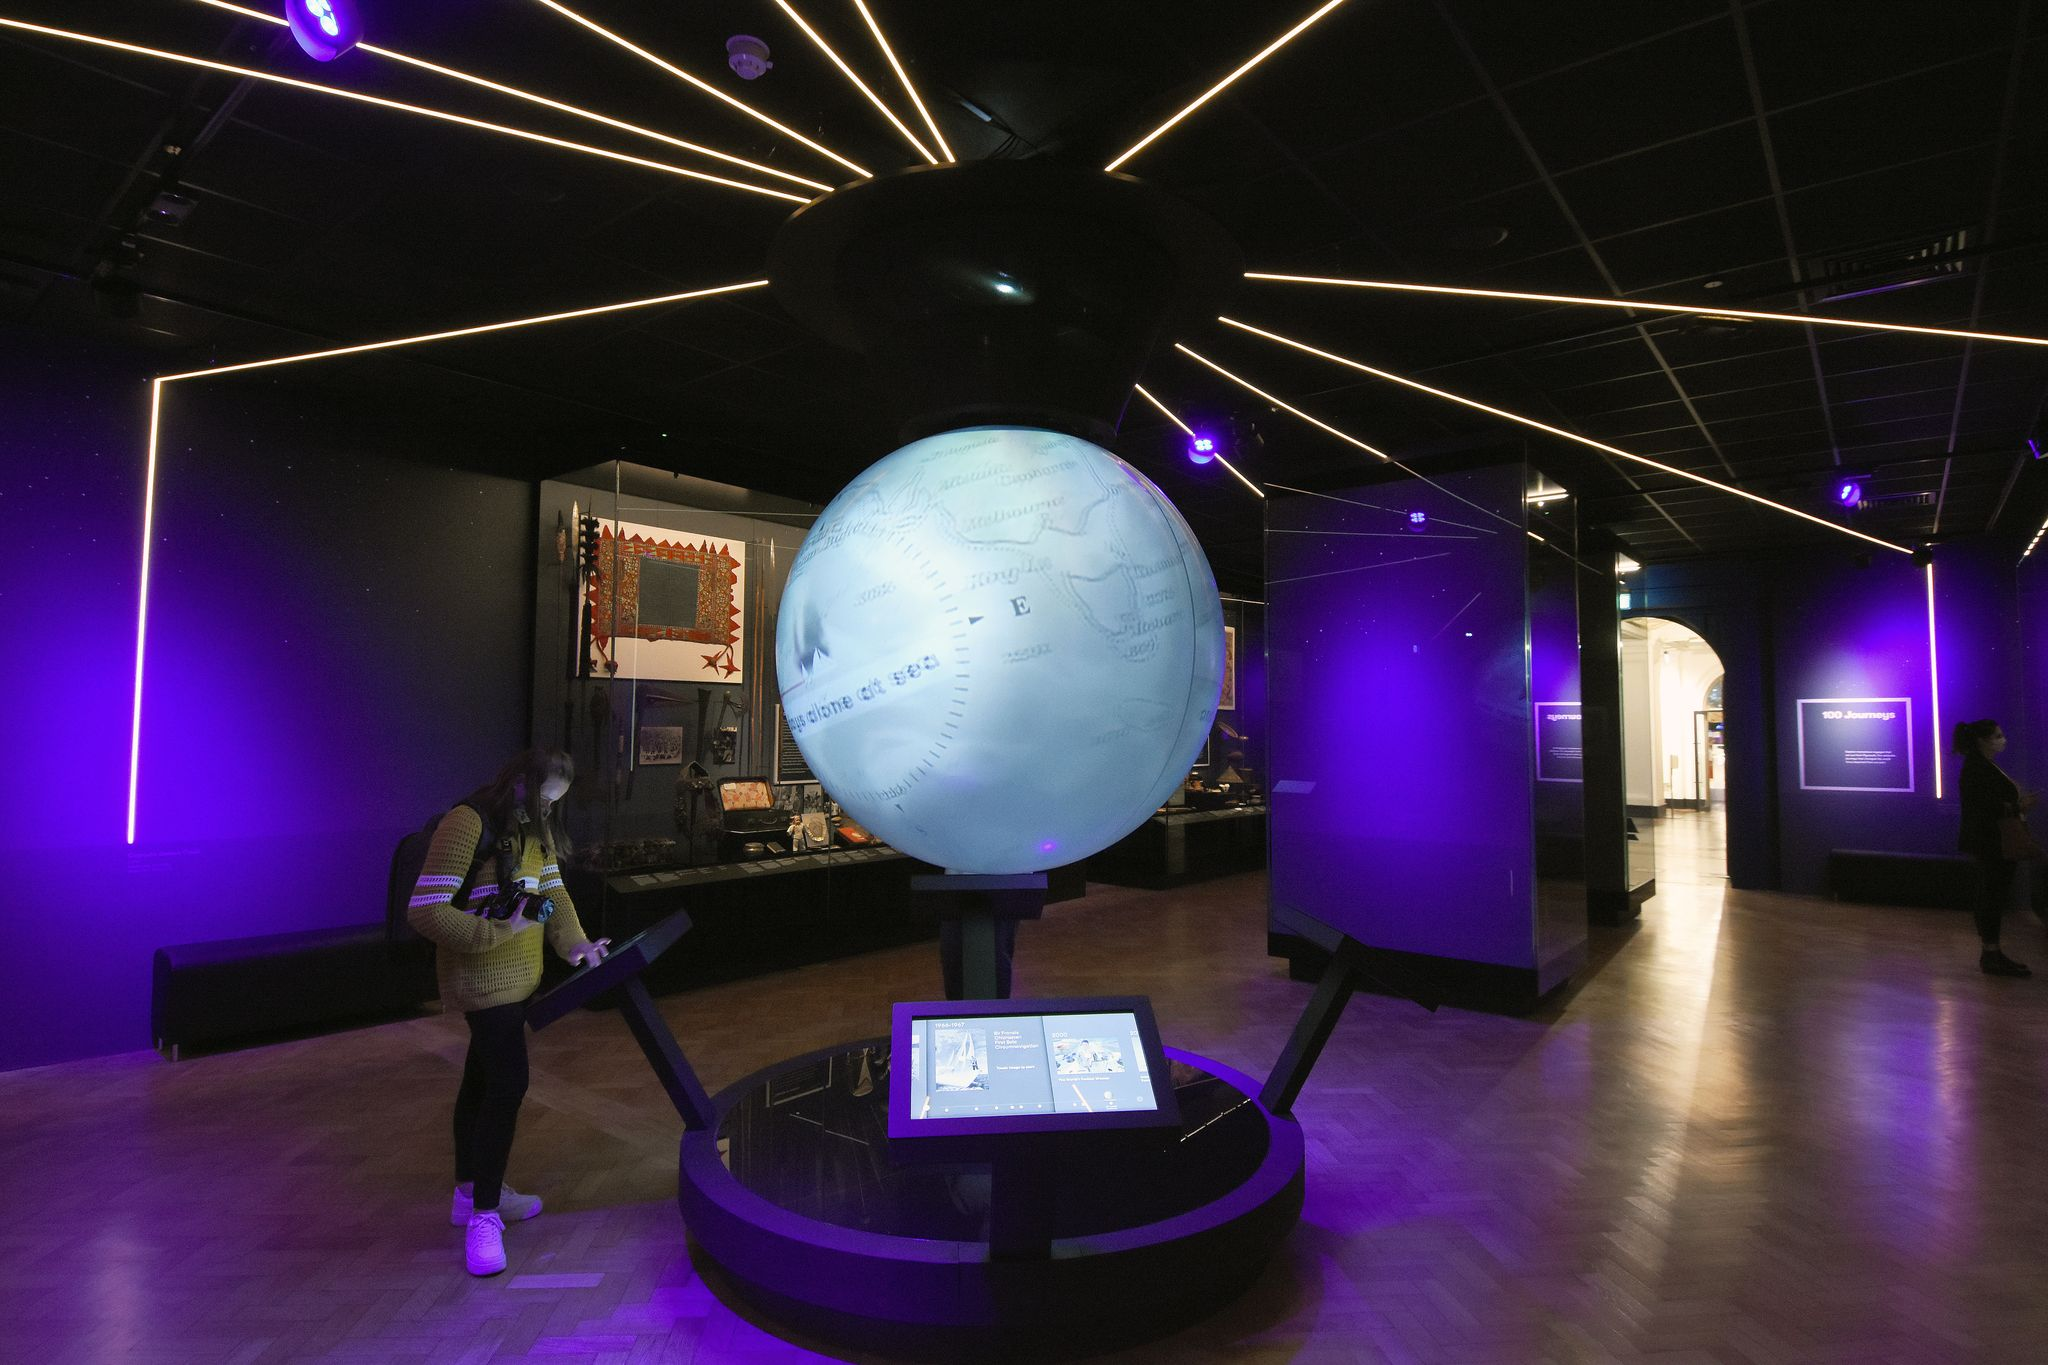 The 100 Journeys gallery and exhibition